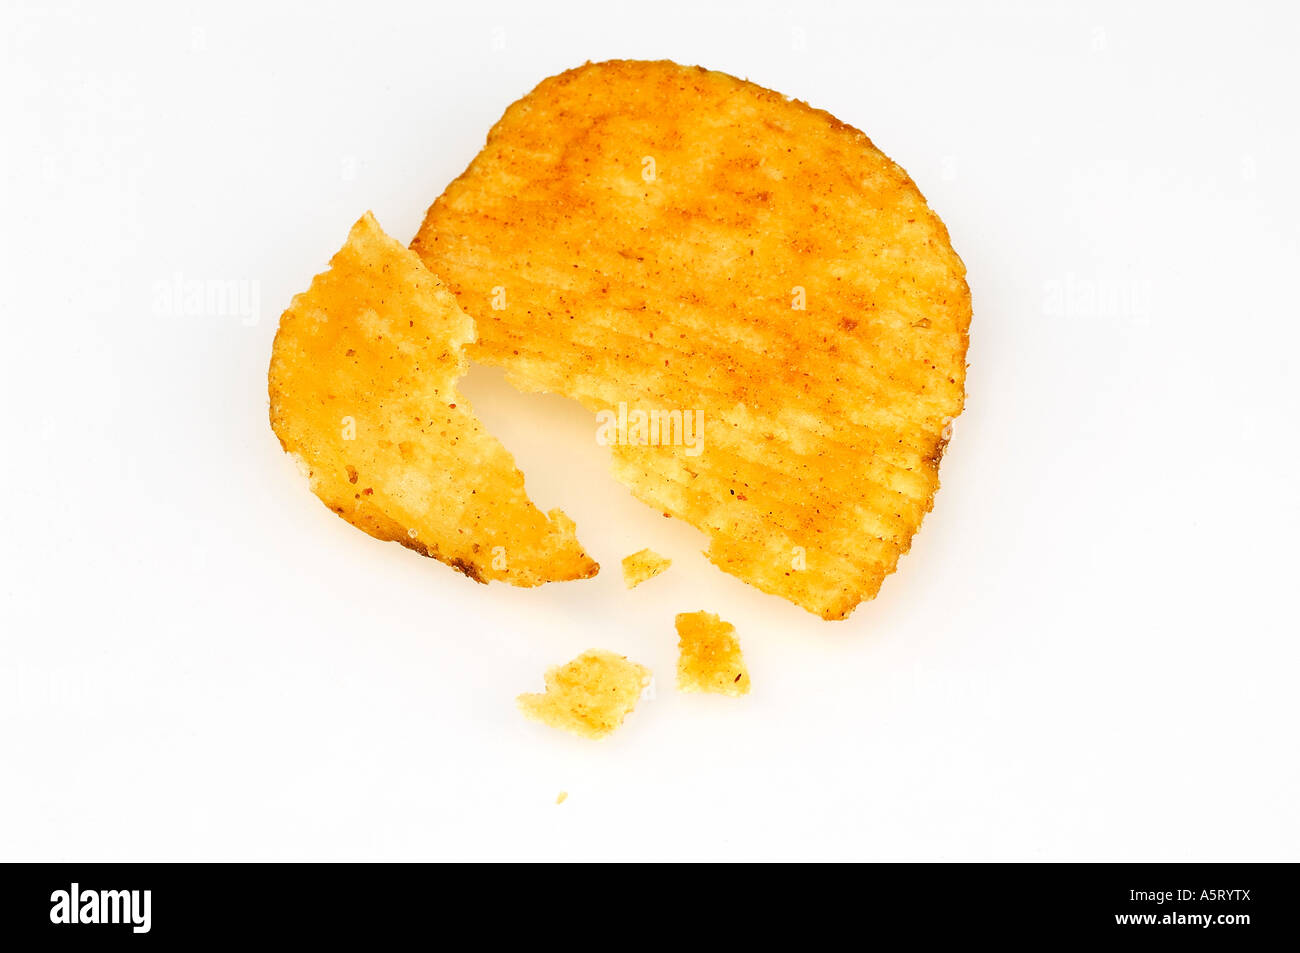 Broken flake of crisps and crumbs on white background - Stock Image